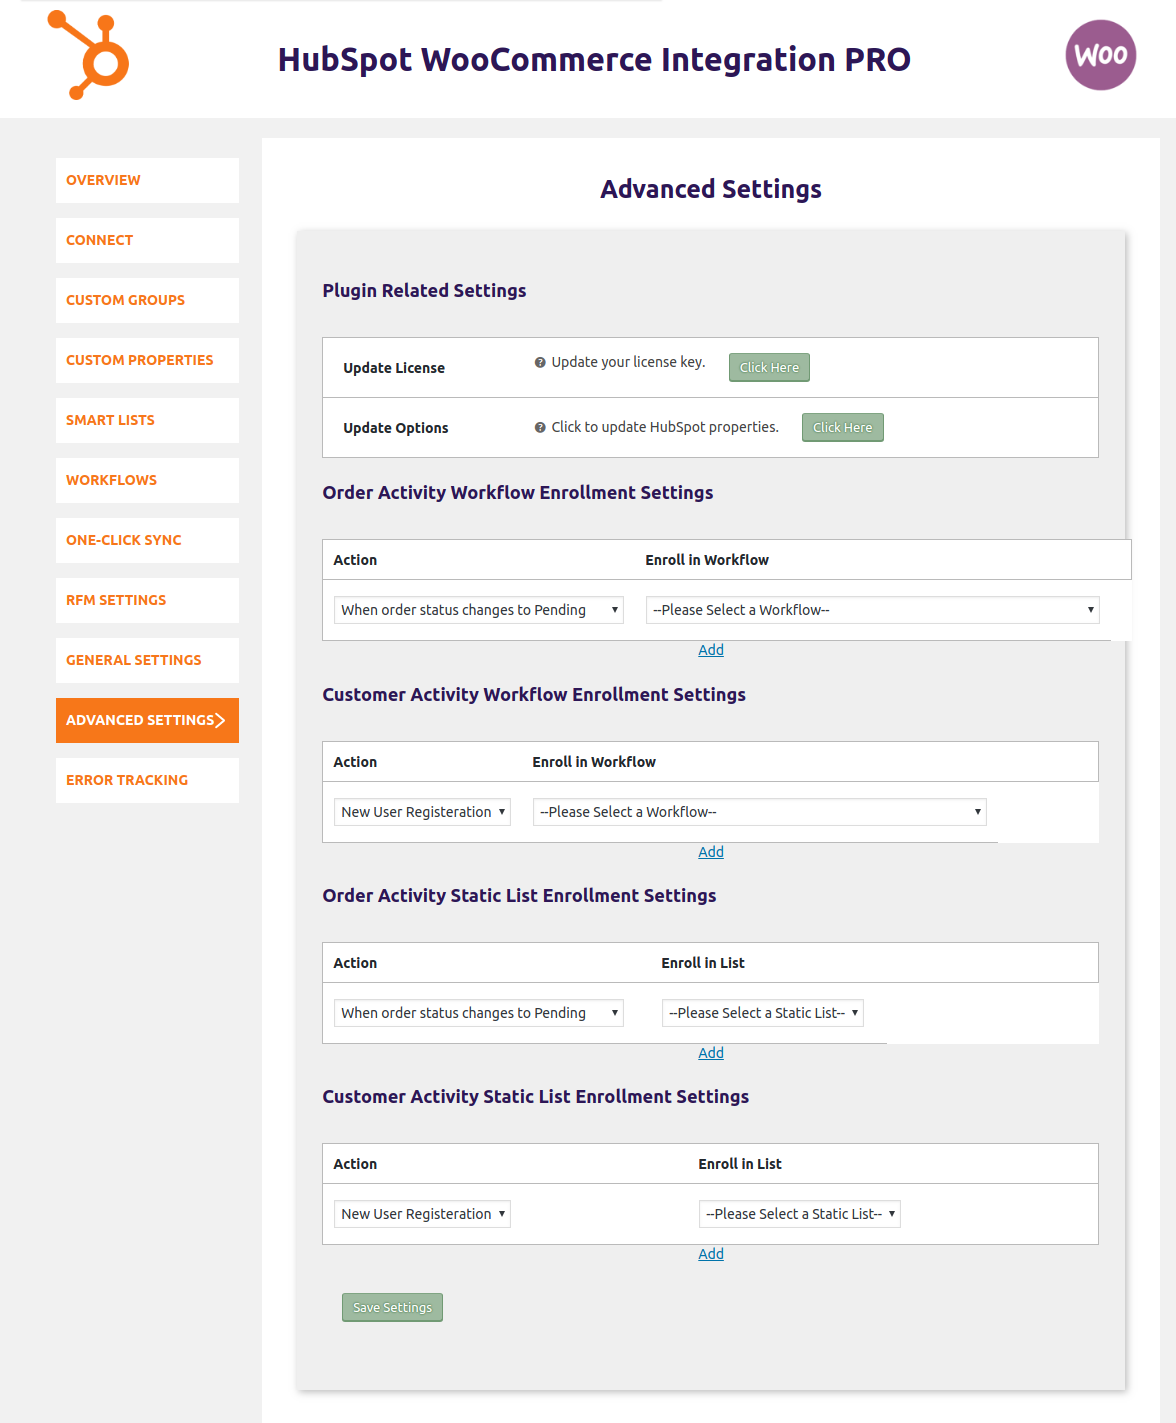 HubSpot WooCommerce Integration-enrolling-in-workflows-and-static-lists